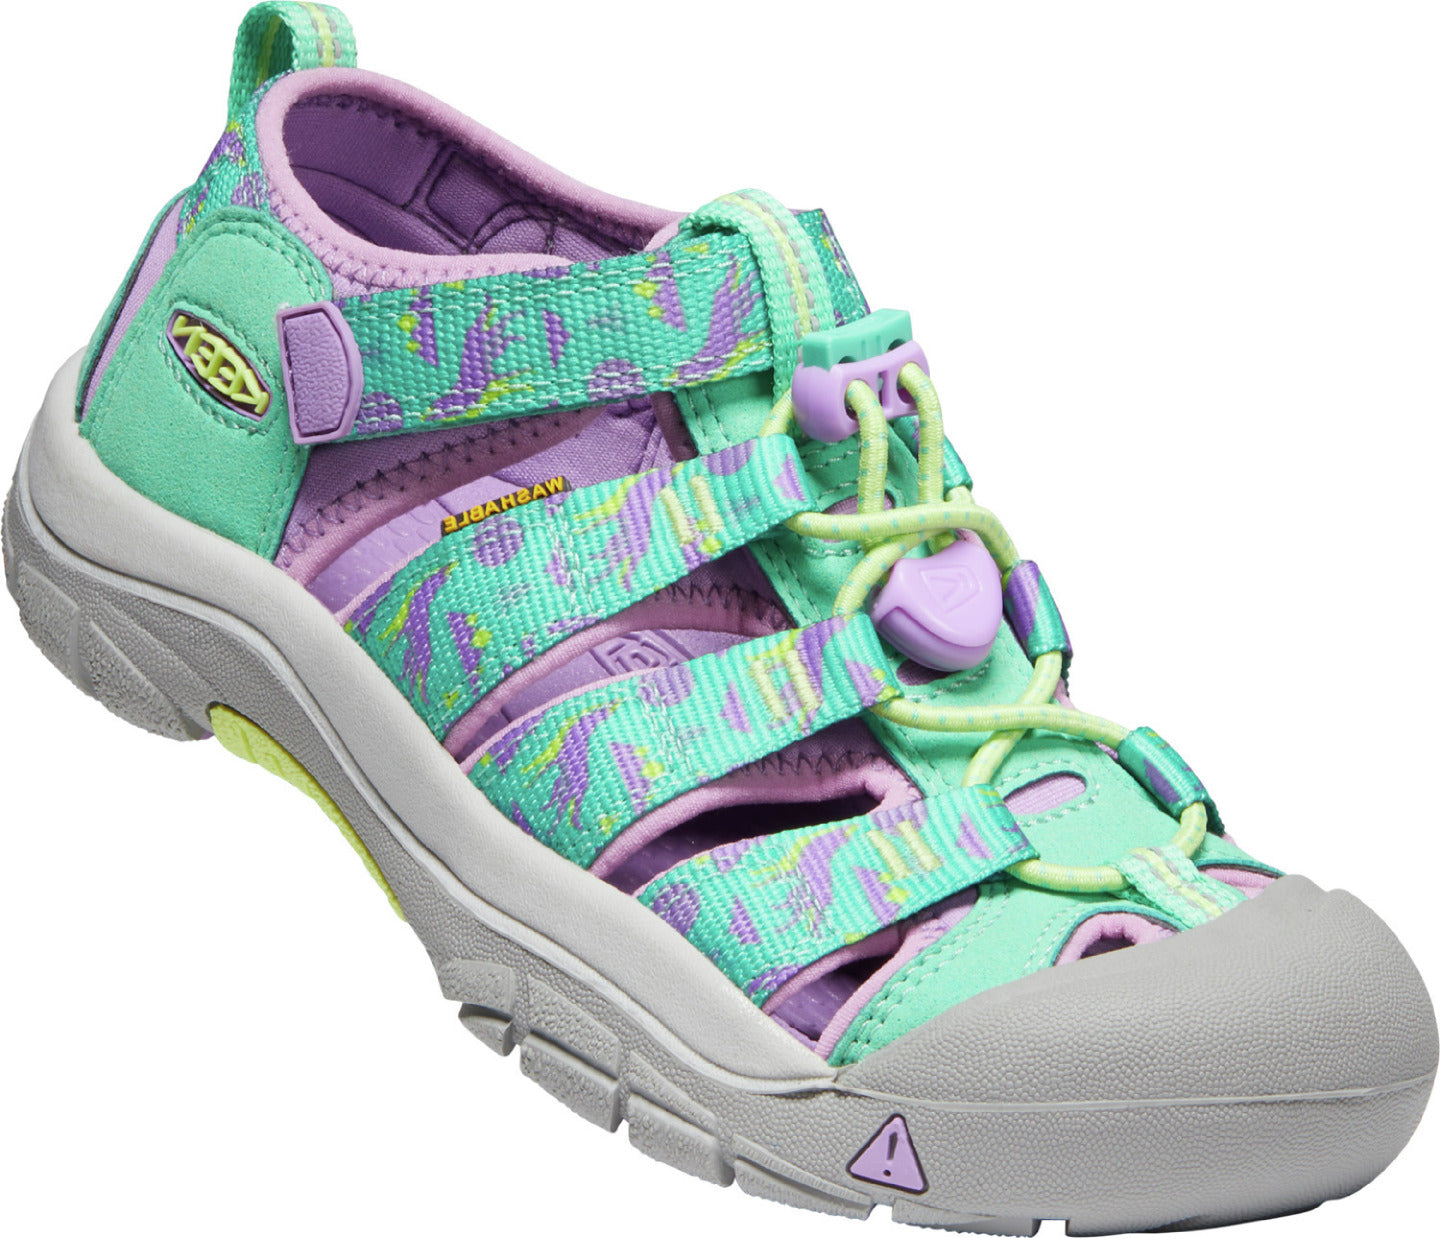 Youth KEEN Newport H2 Sandal in Katydid/African Violet from the side